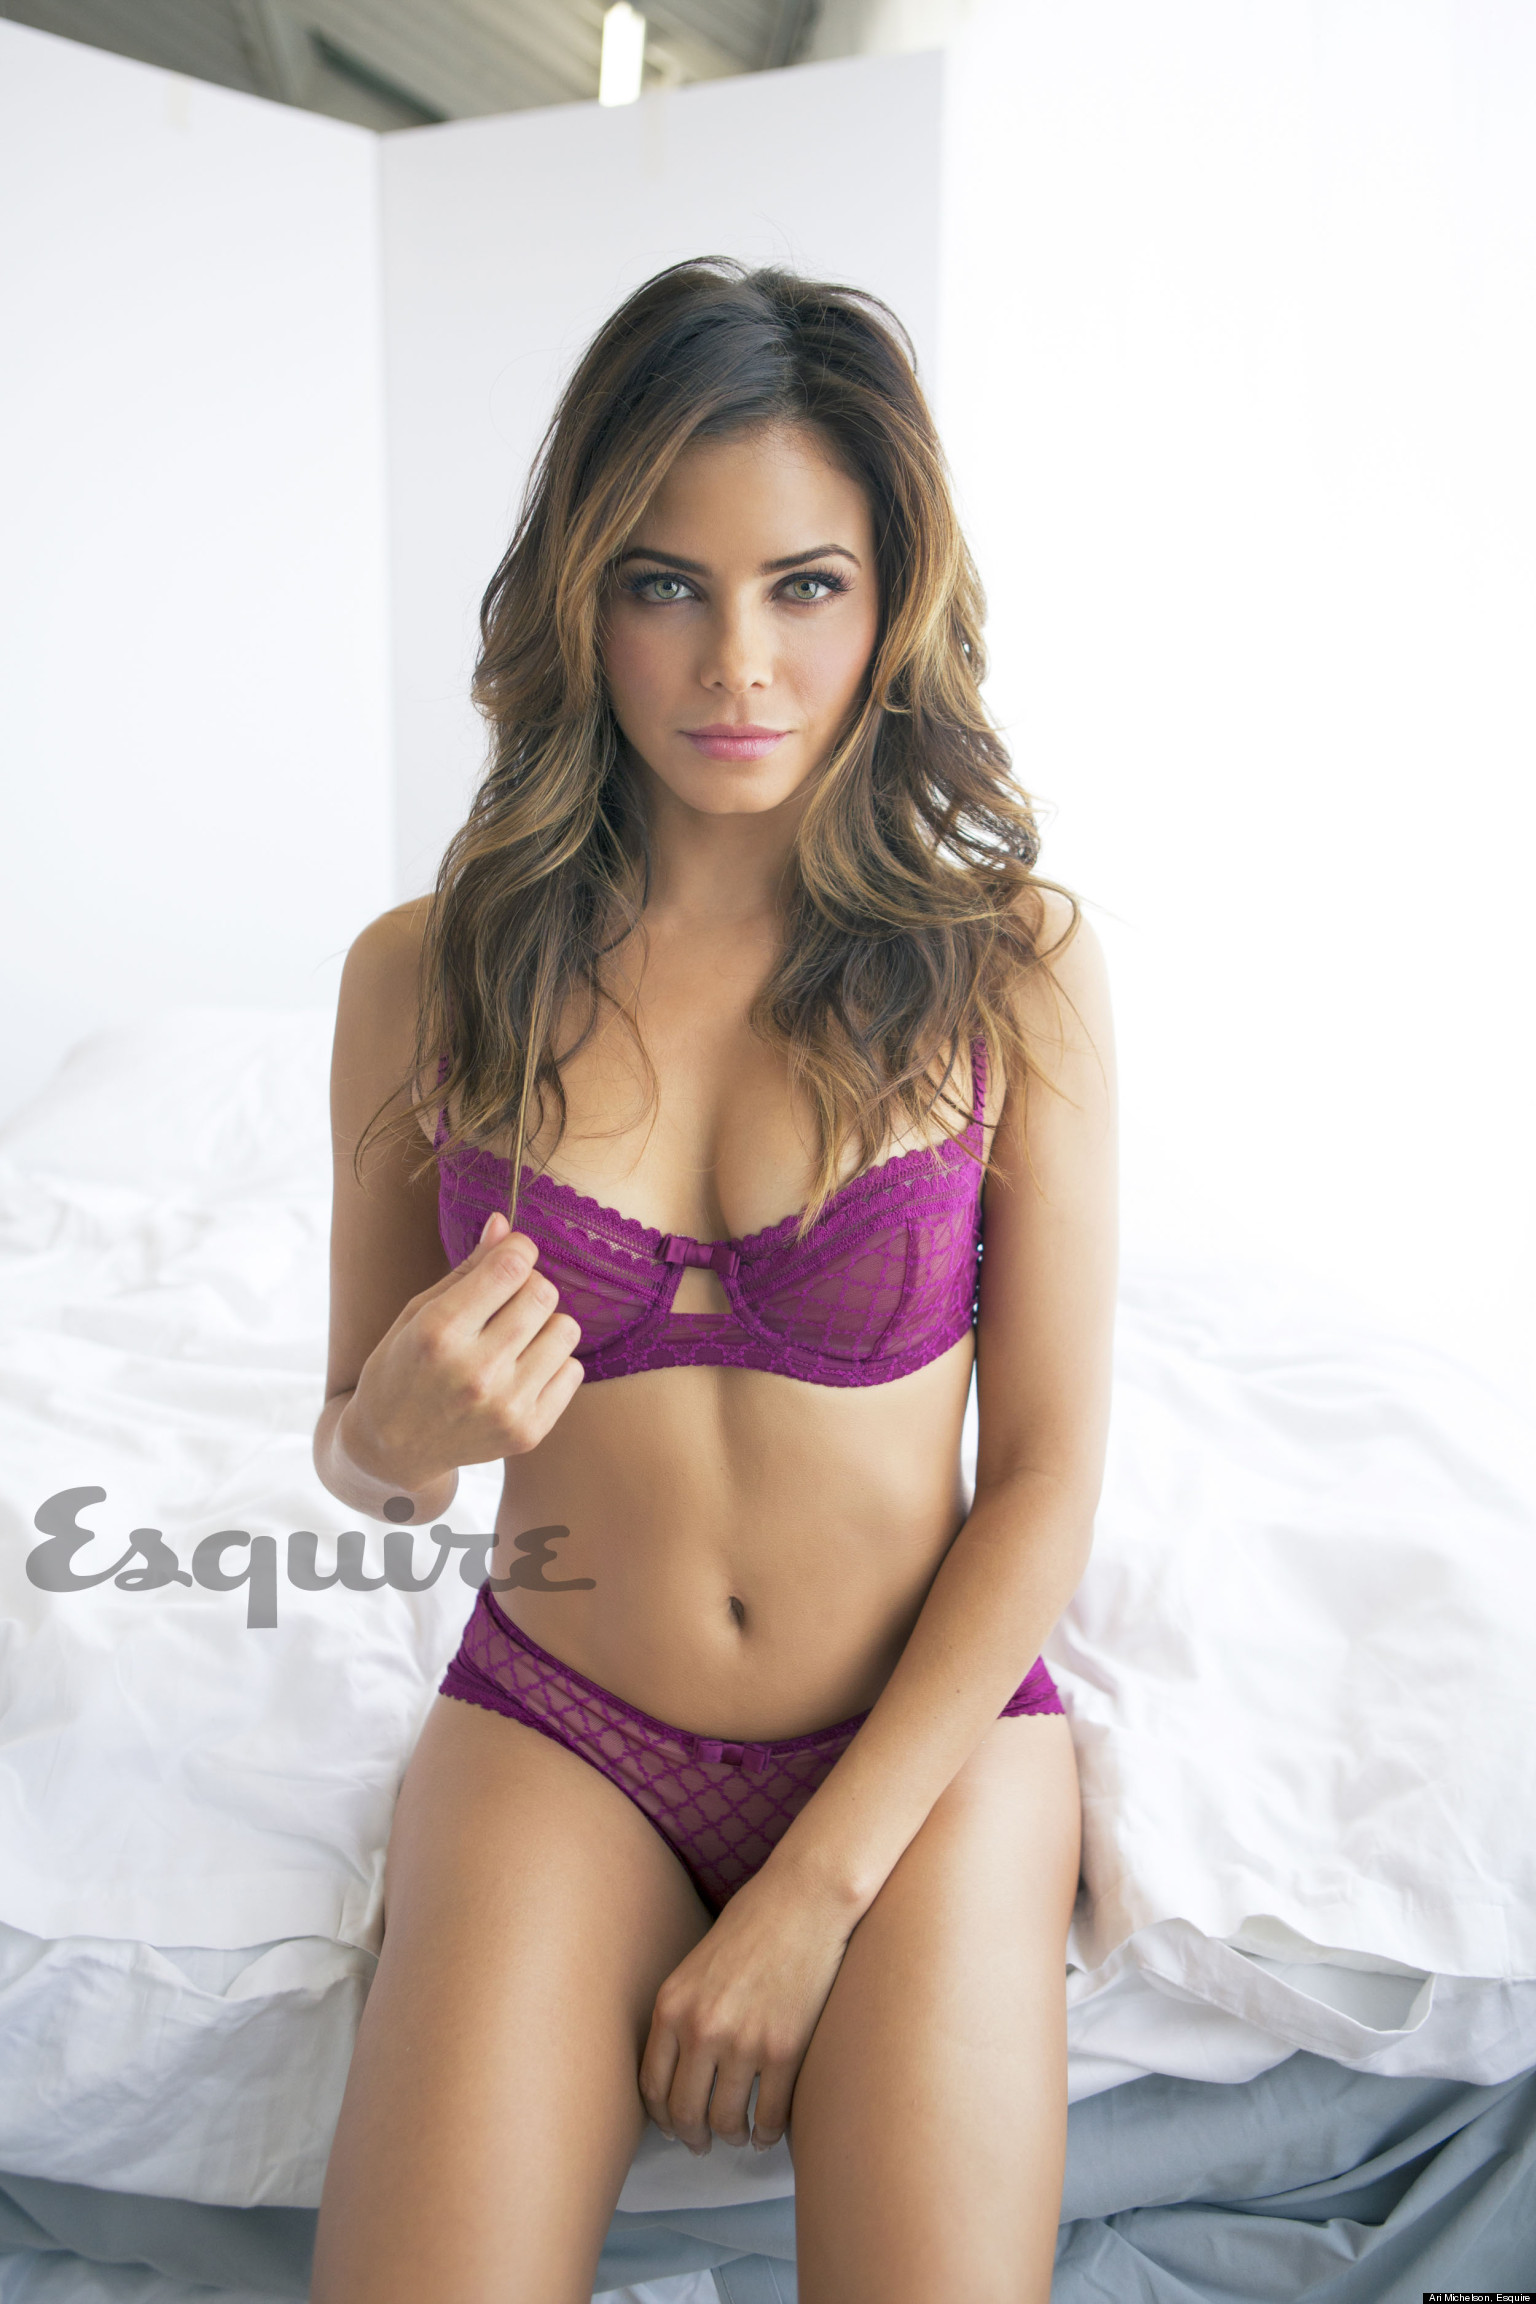 entertainment celebs news former disney star poses sexy lingerie after losing fifty shades